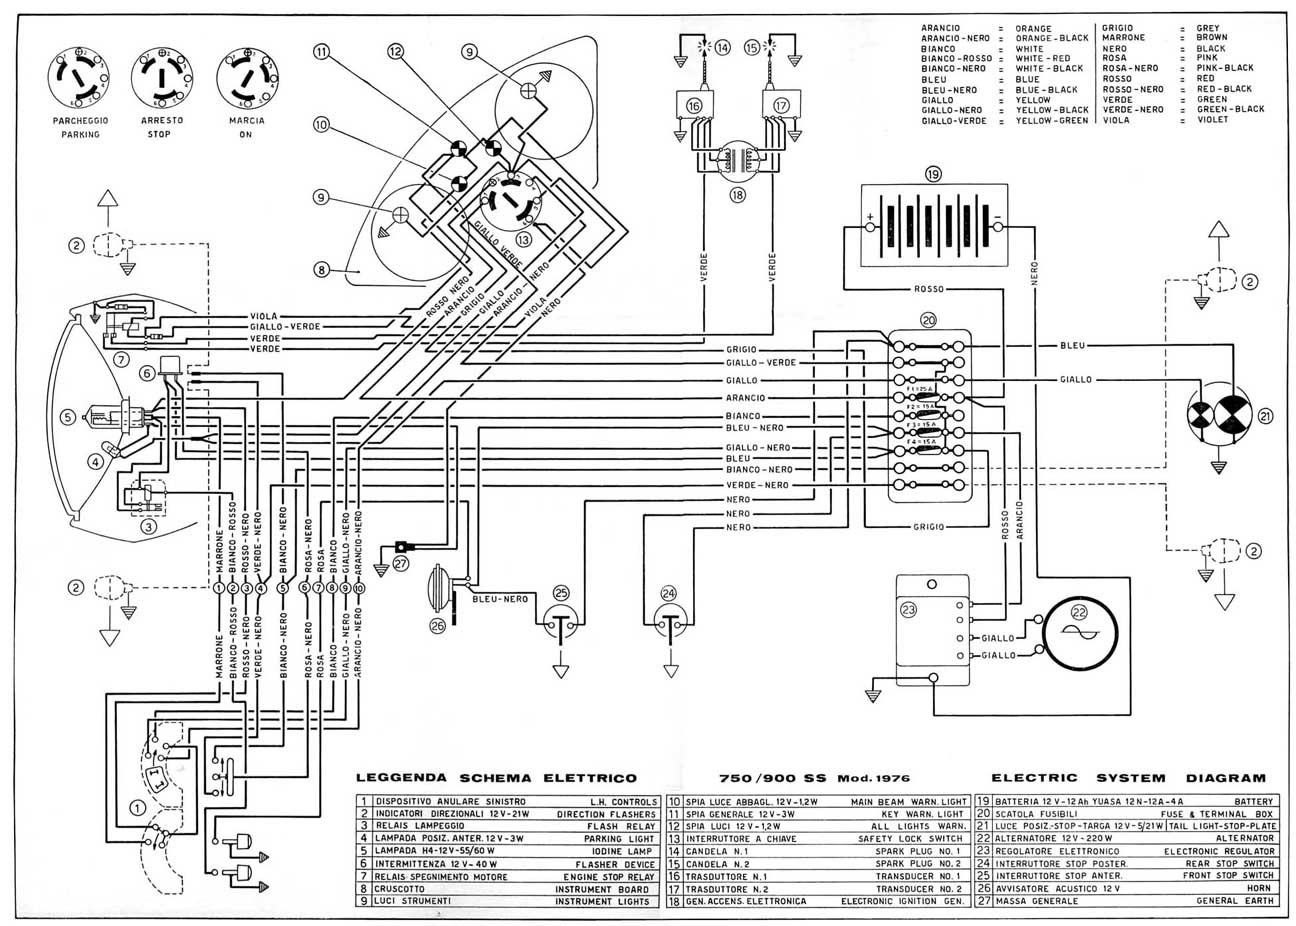 Honda Goldwing Alternator Wiring Diagram